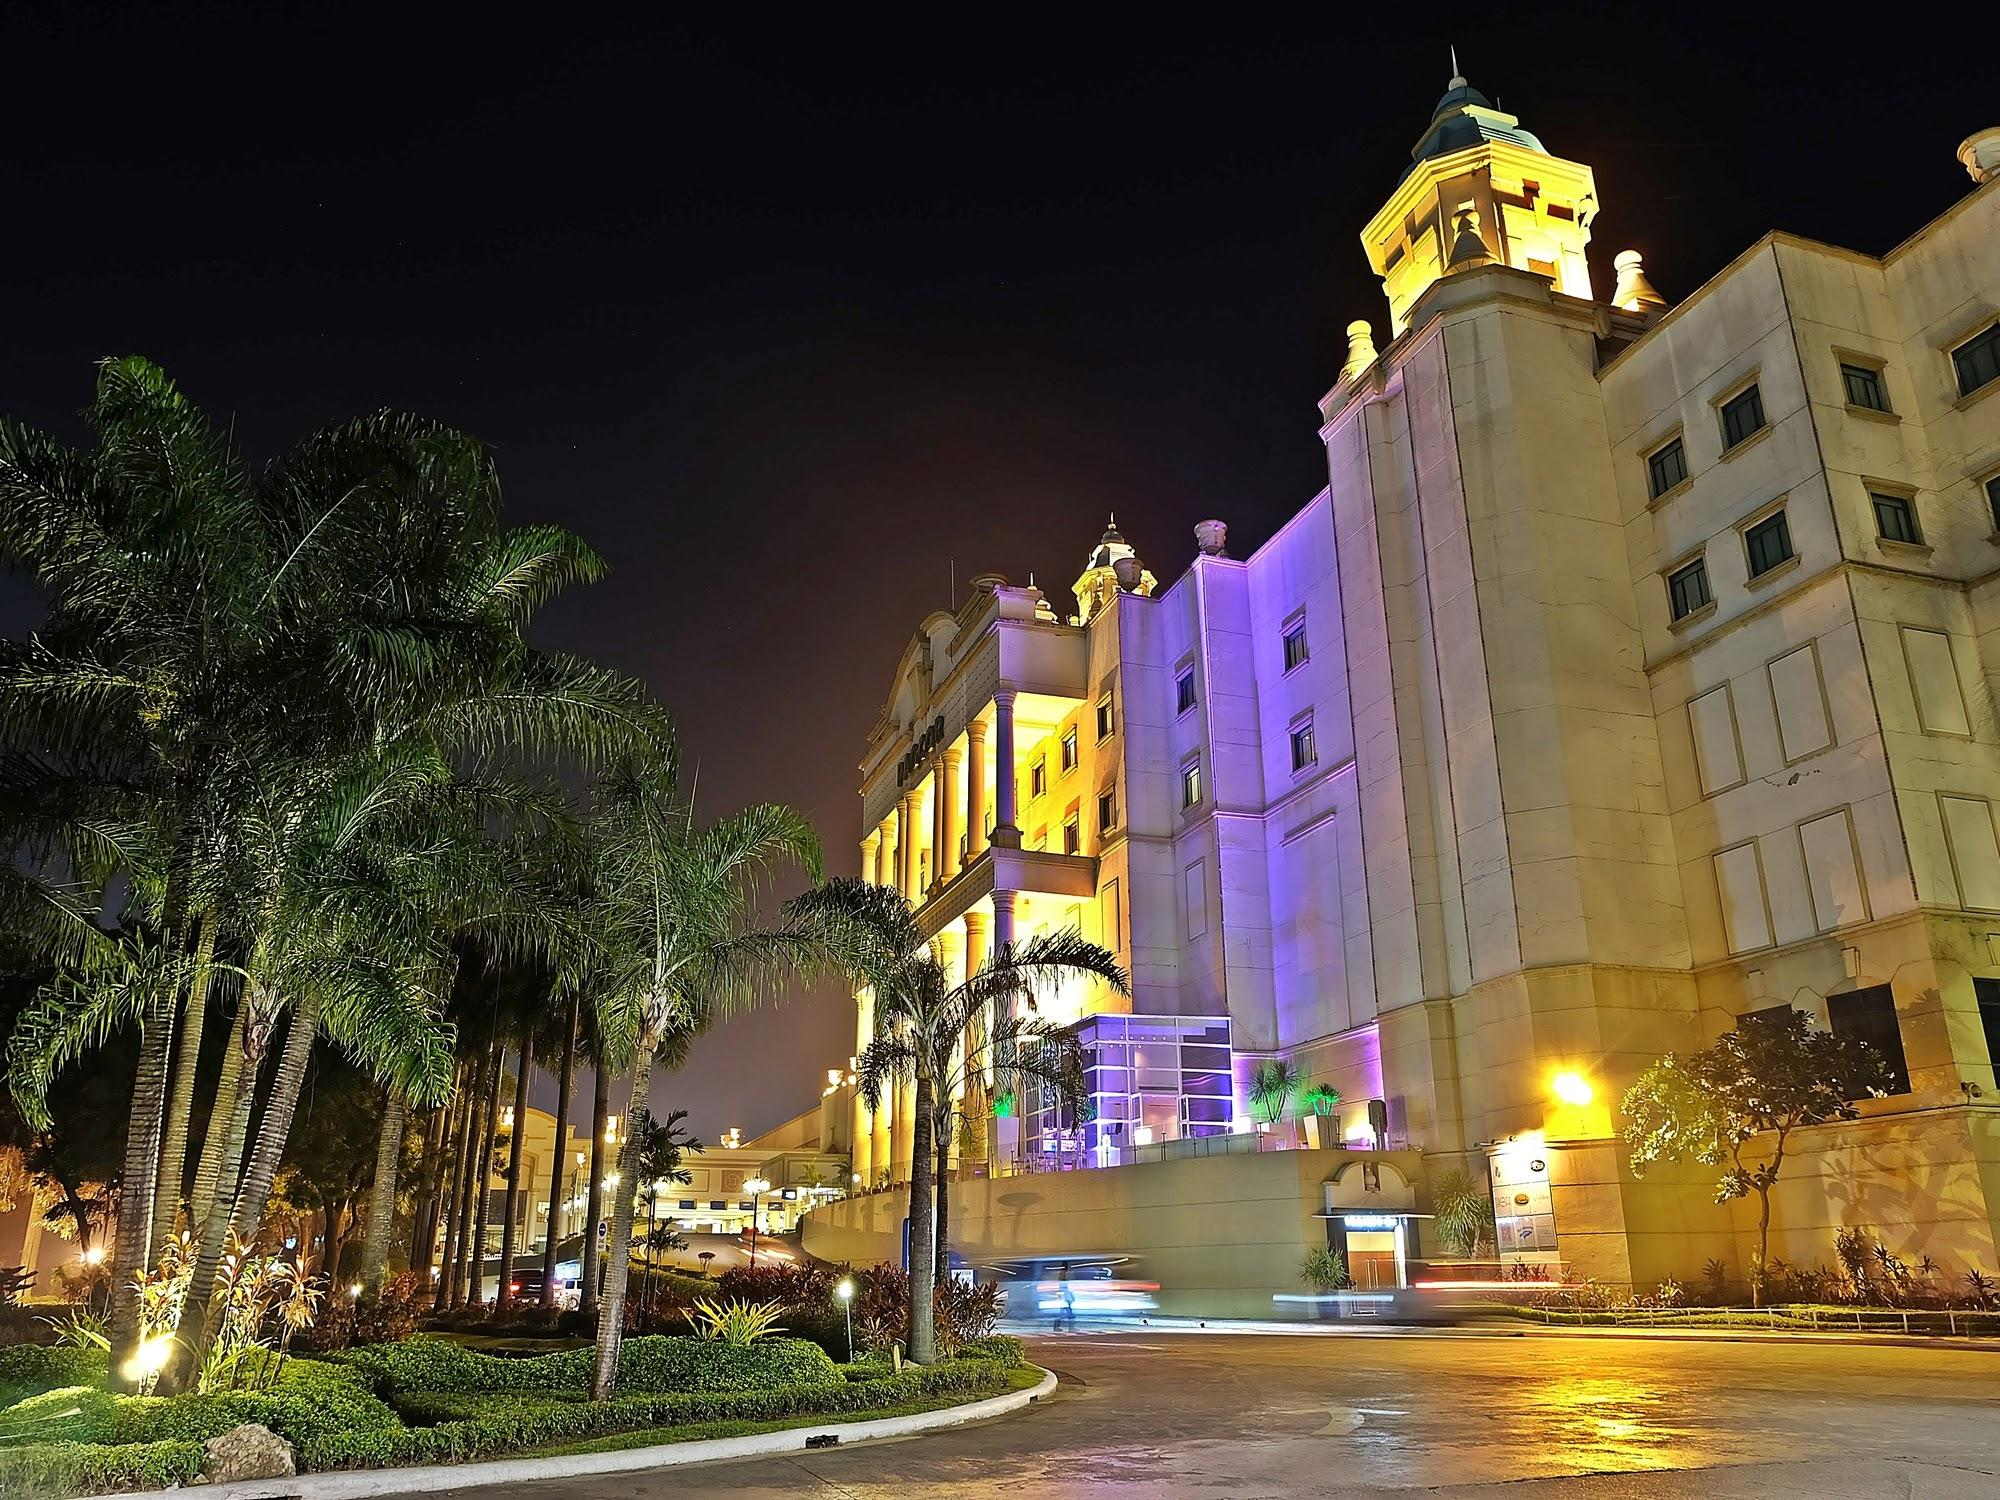 Waterfront Cebu City Hotel and Casino Cebu - Hotelli välisilme